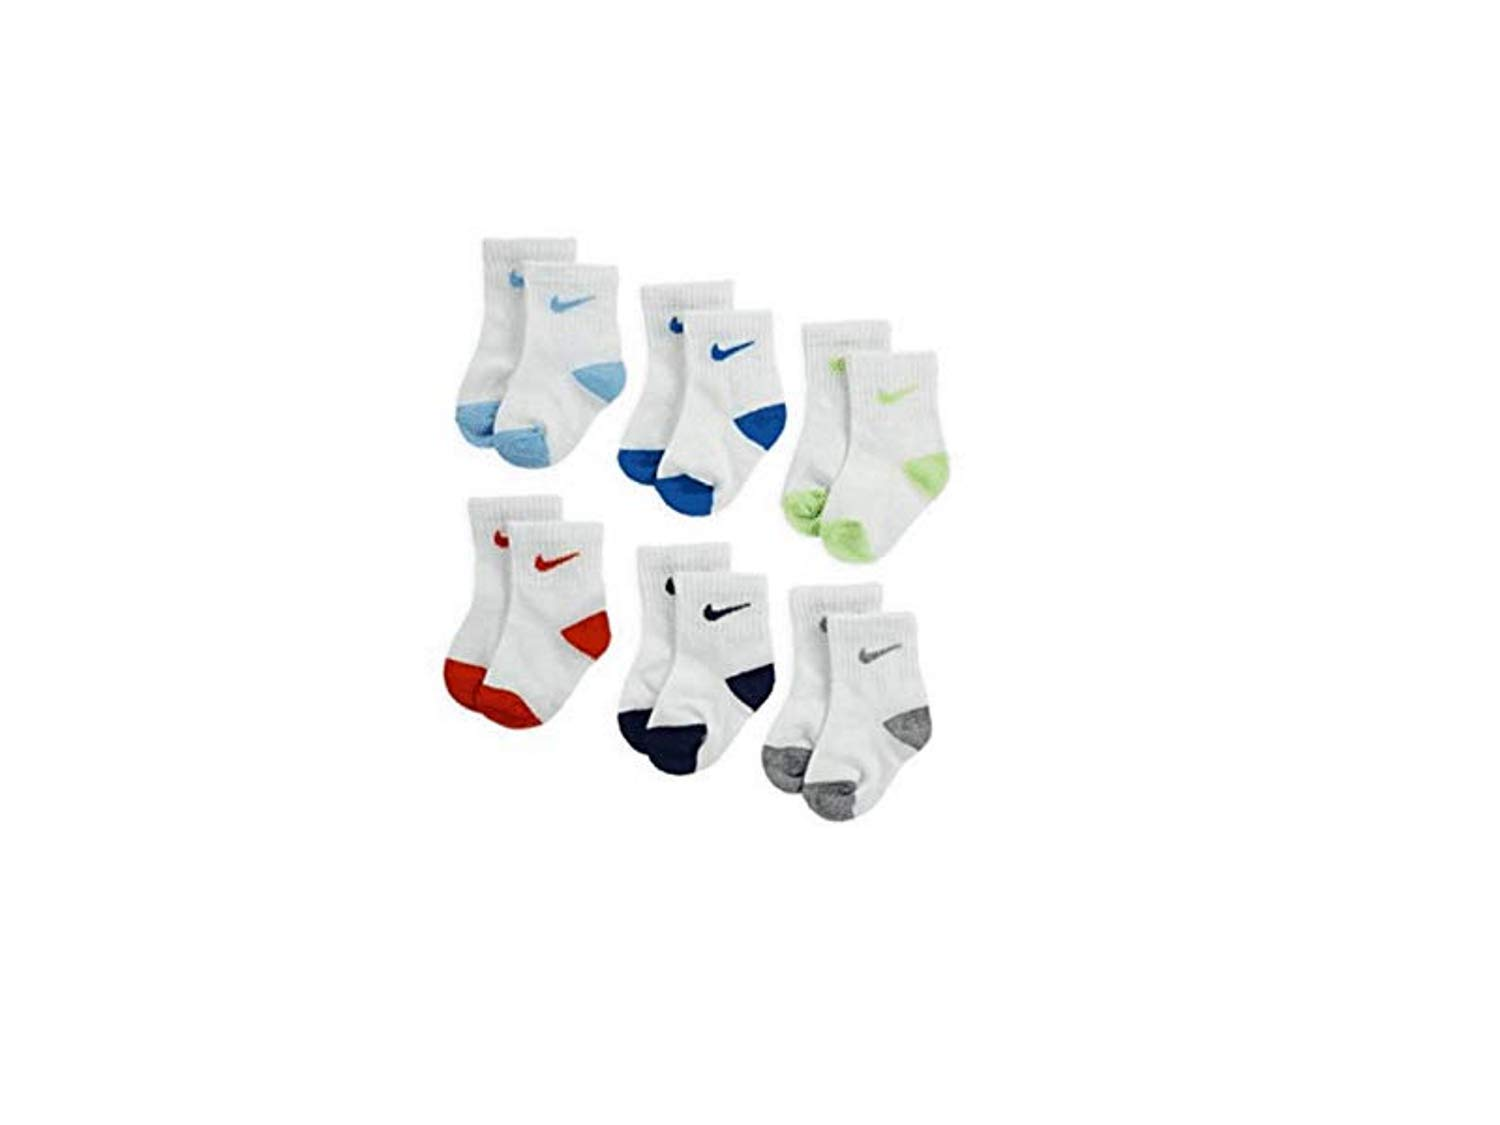 Nike Young Athletes Kids 6-Pair Ankle Socks Shoes 10C-13CY/5-7 (Sock Size)